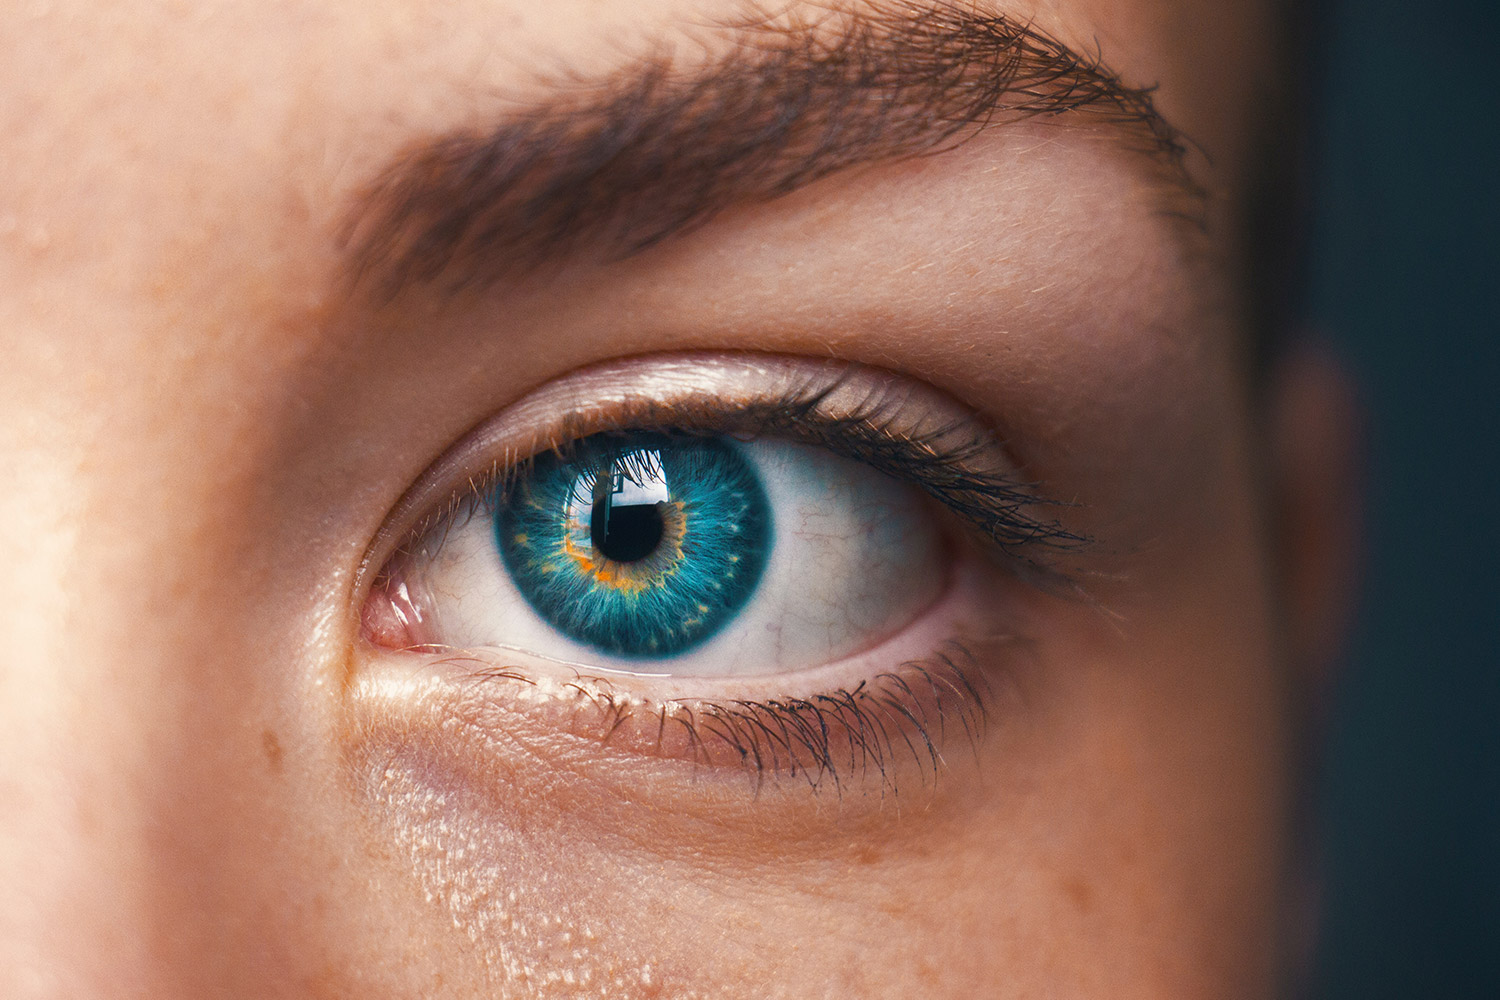 A blue eye of a young woman